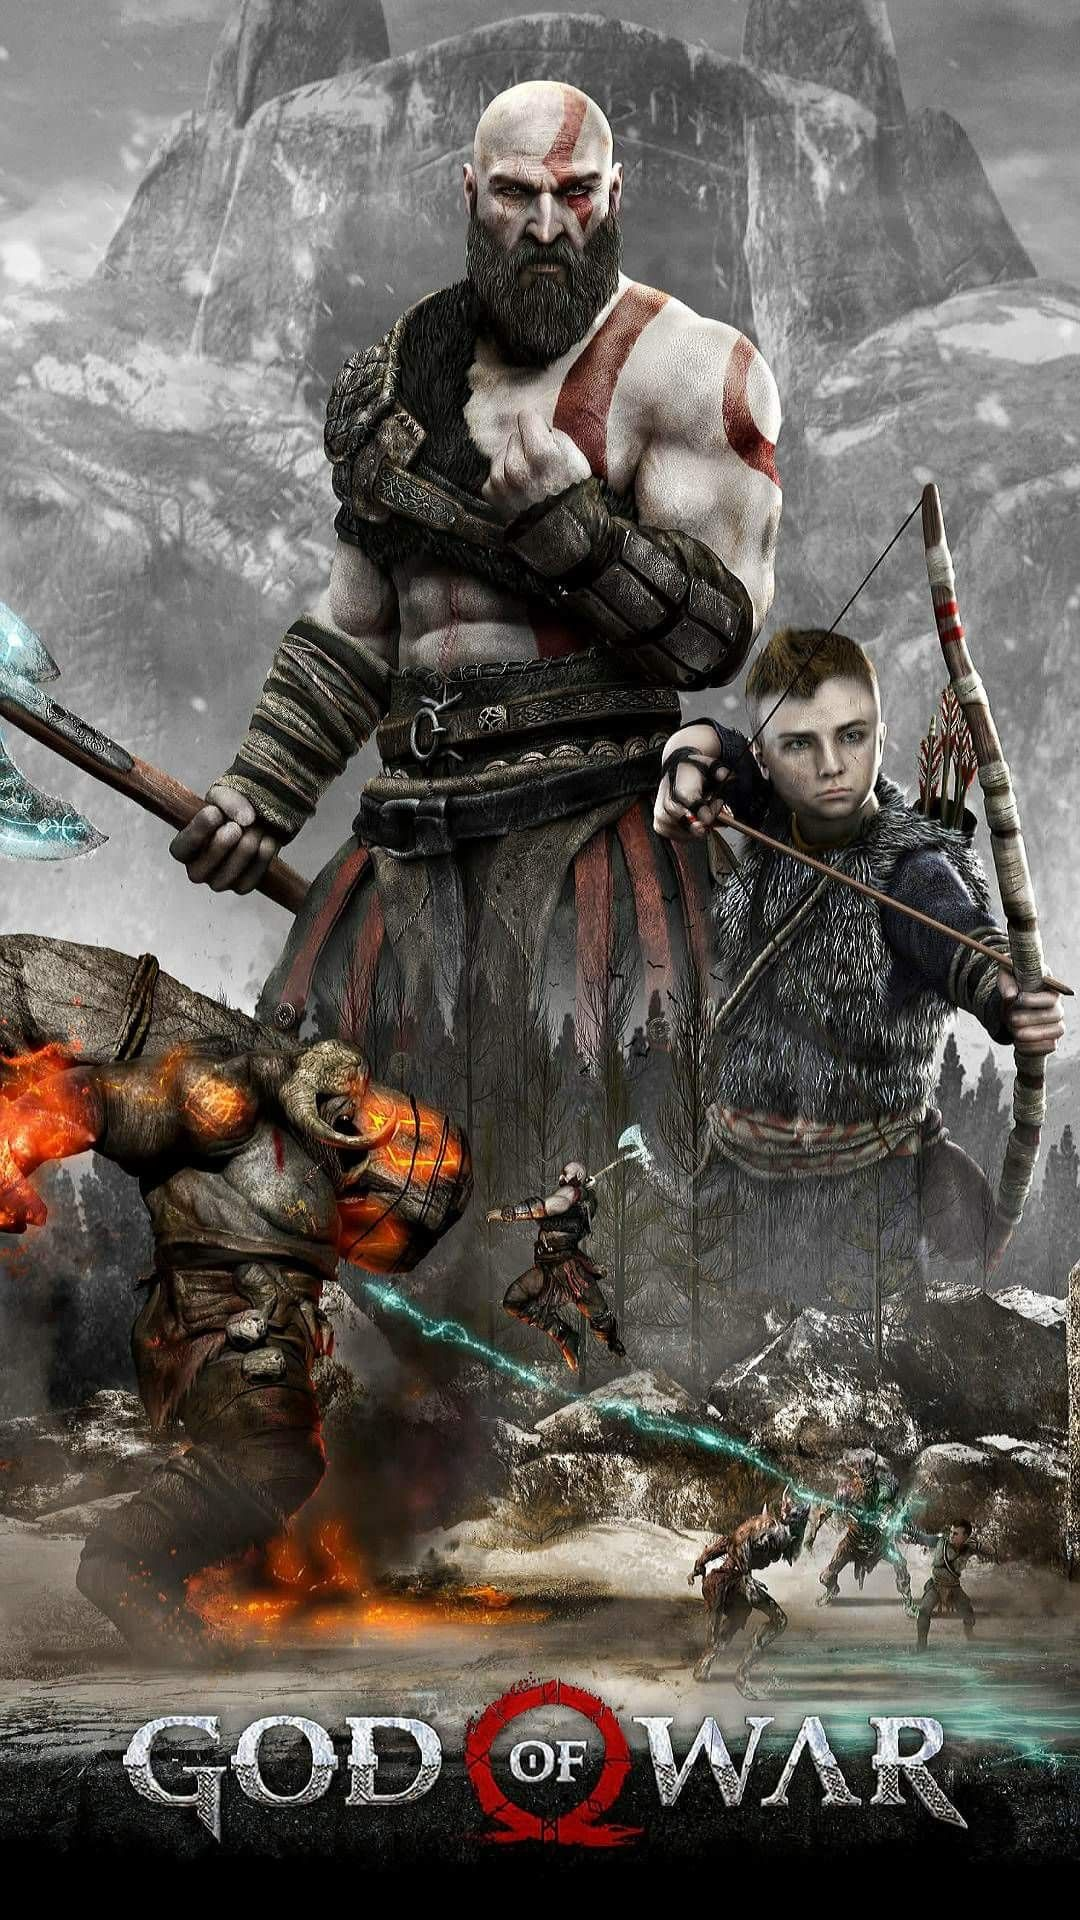 Pin By Genesis On Playstation Games God Of War Kratos God Of War God Of War Series